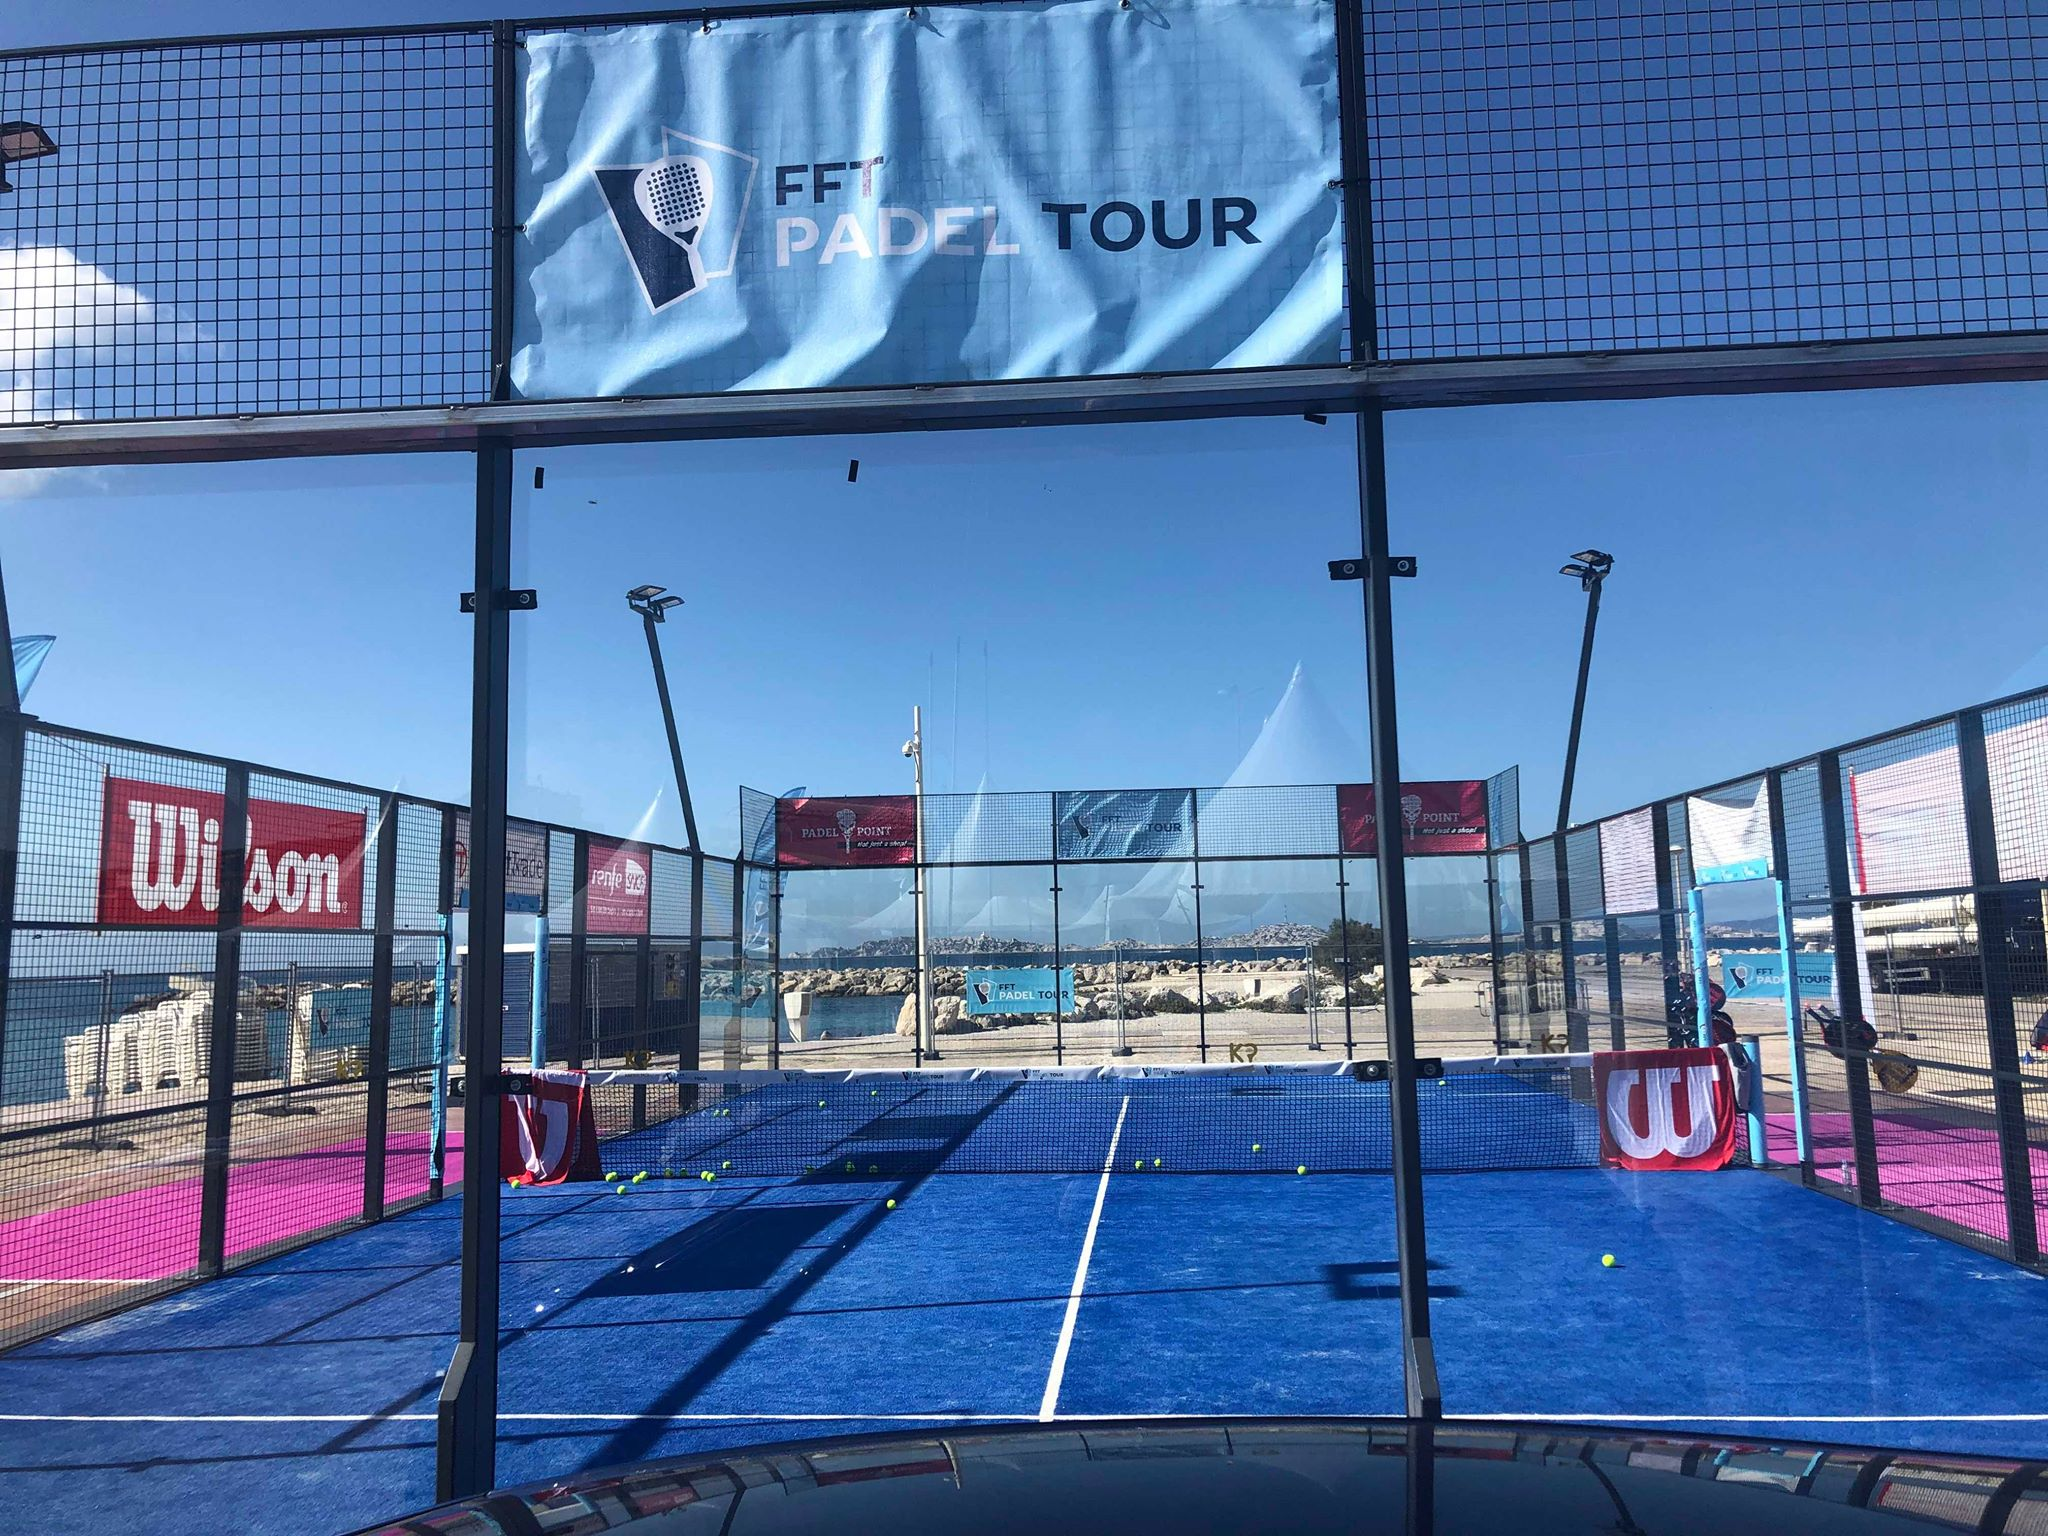 Masters FFT PADEL TOUR MARSEILLE - 1 / 4 Gentlemen - Ritz / Pequery vs. Lopes / Authier